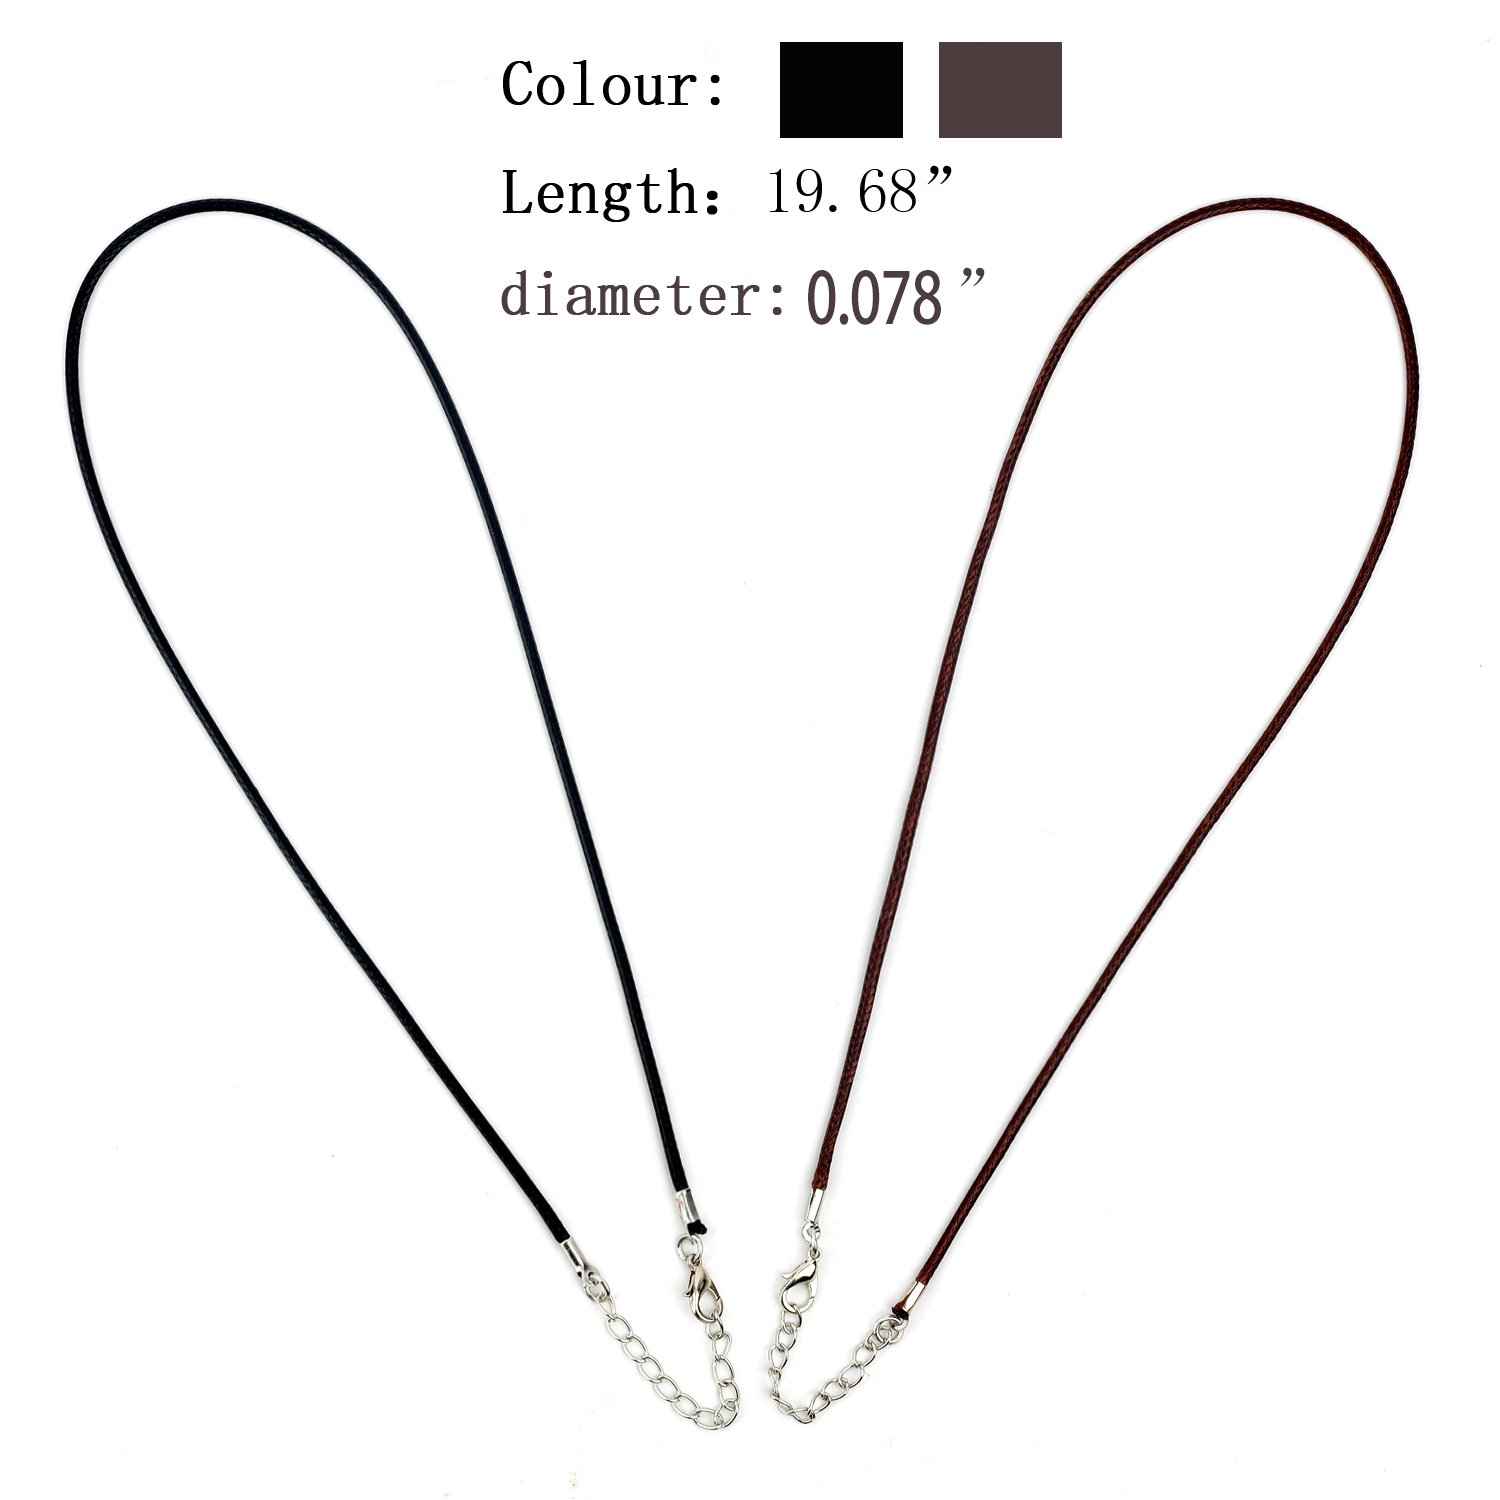 Necklace Cord 18 Inches Black/Brown Waxed Cotton Necklace Cord DIY Jewelry Making Ropes with Extension Chain Lobster Claw Clasp for Kids Girls Women Men DIY Gift(2.0MM)